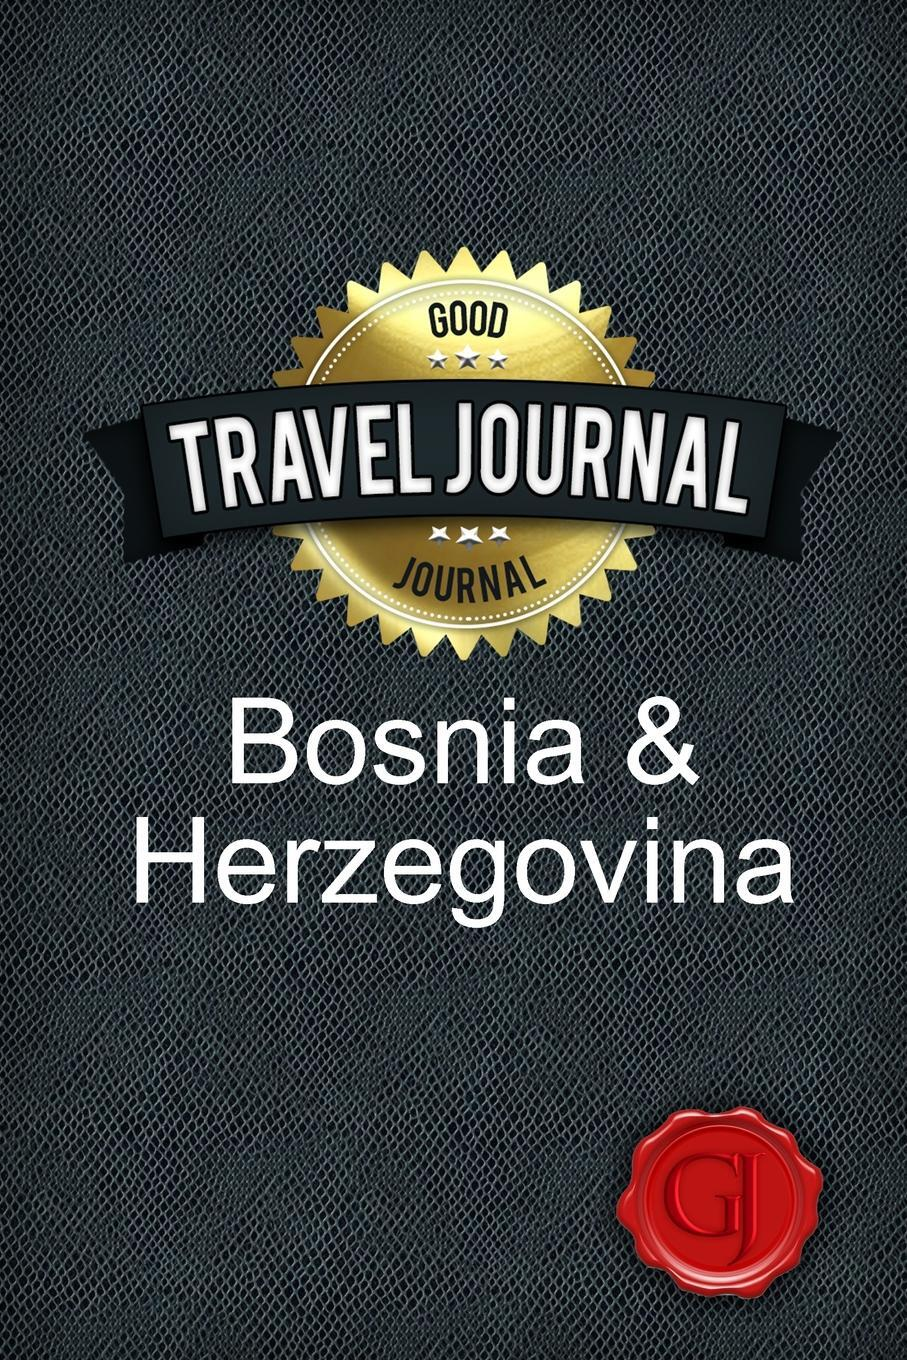 Travel Journal Bosnia and Herzegovina. Good Journal